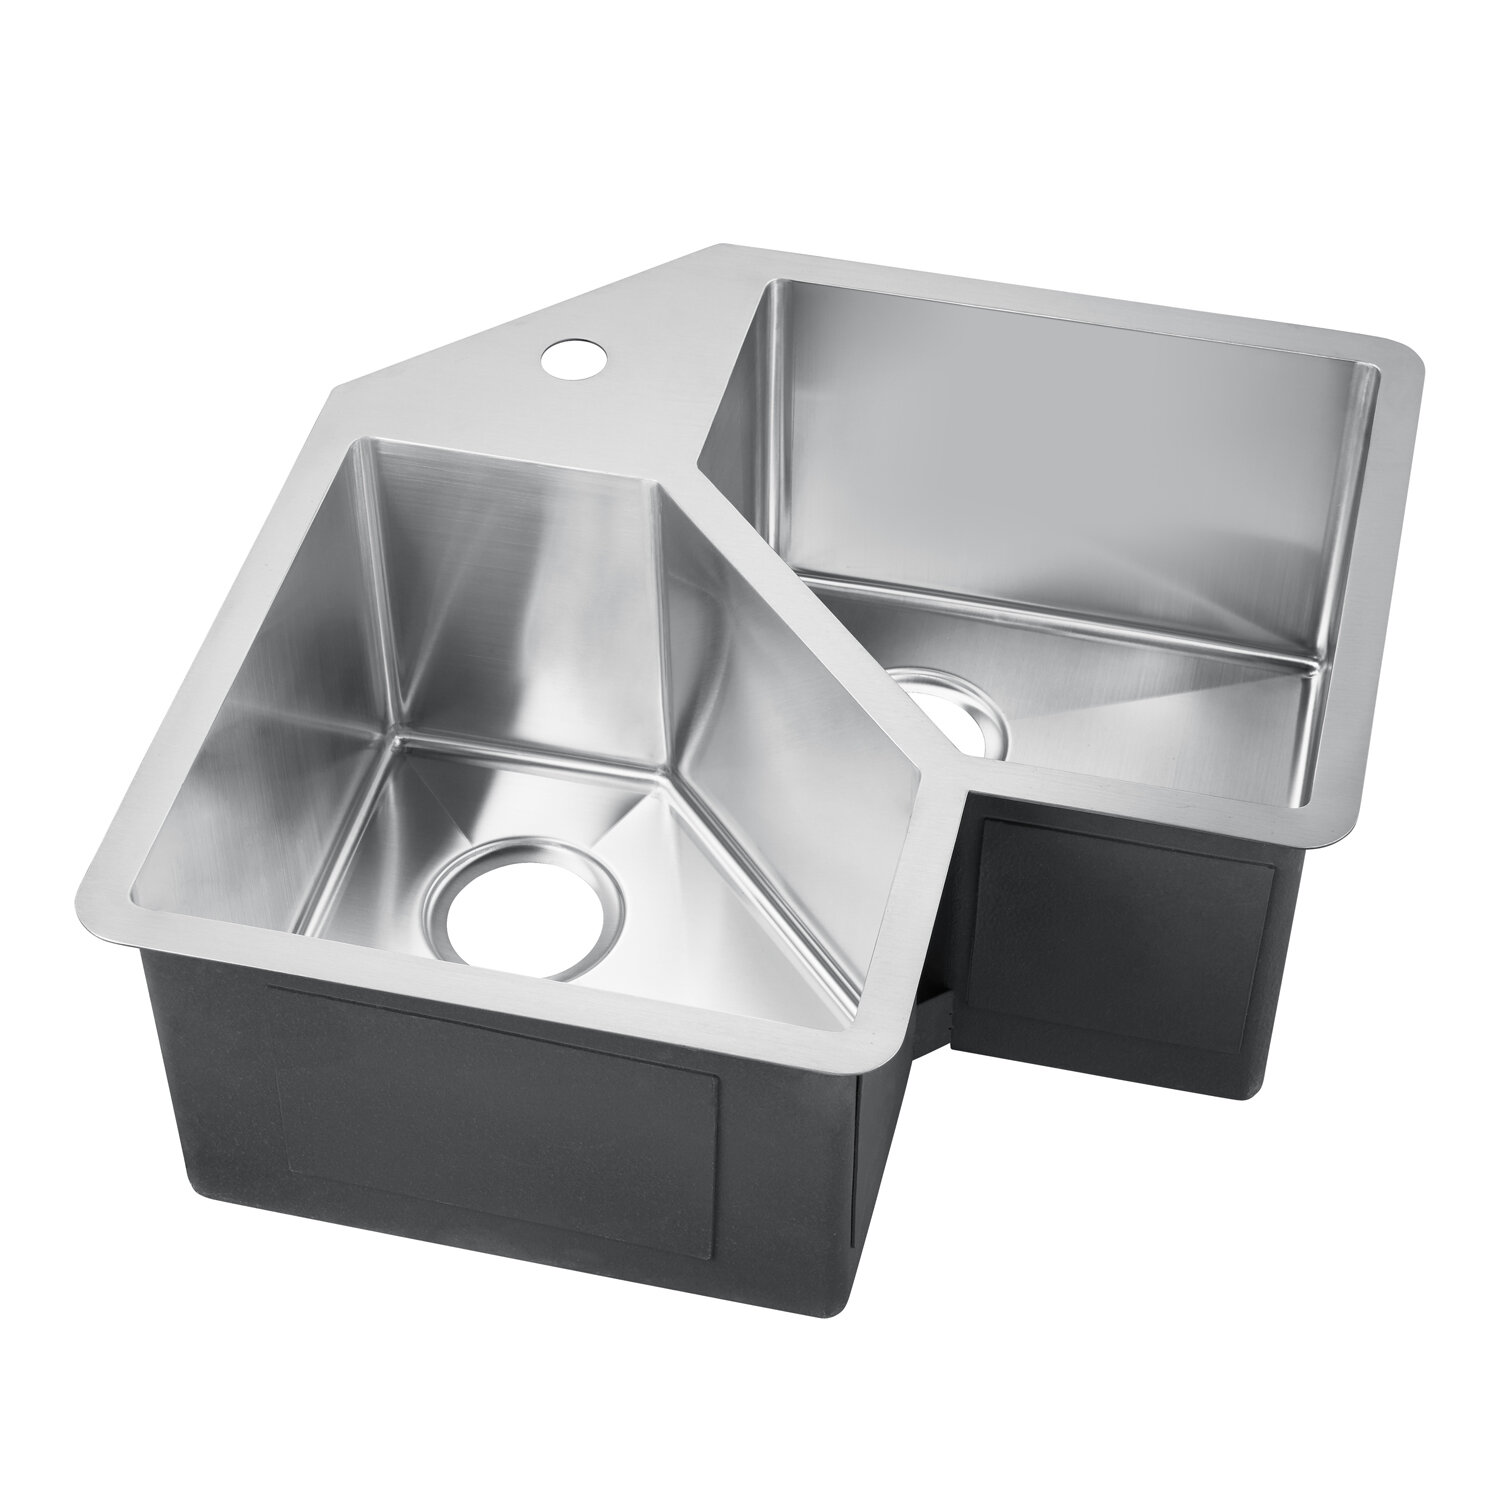 Corner Kitchen Sinks Wayfair Ca